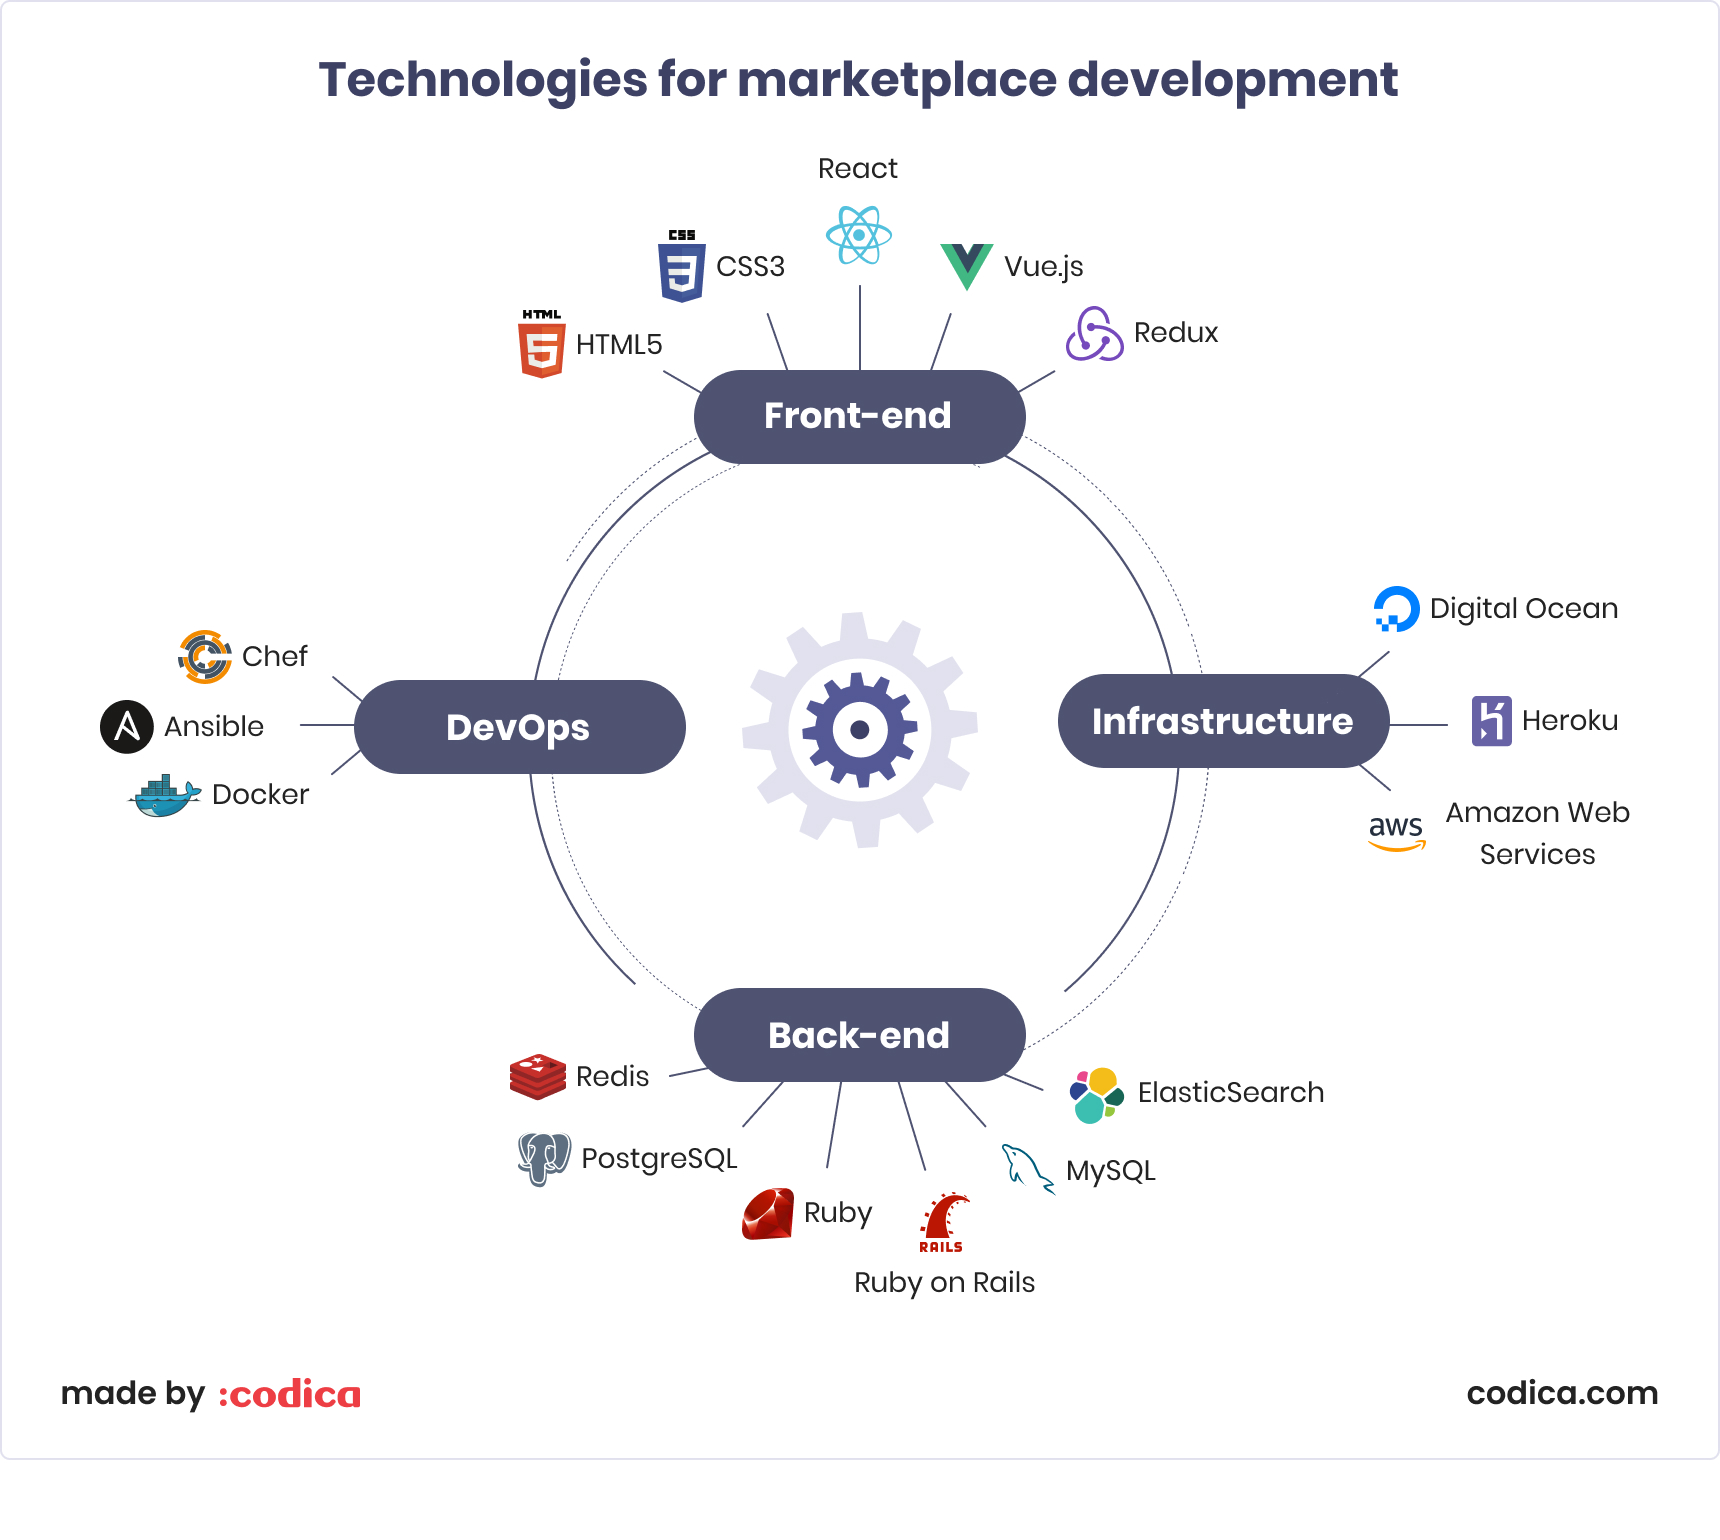 Technologies required for marketplace website development